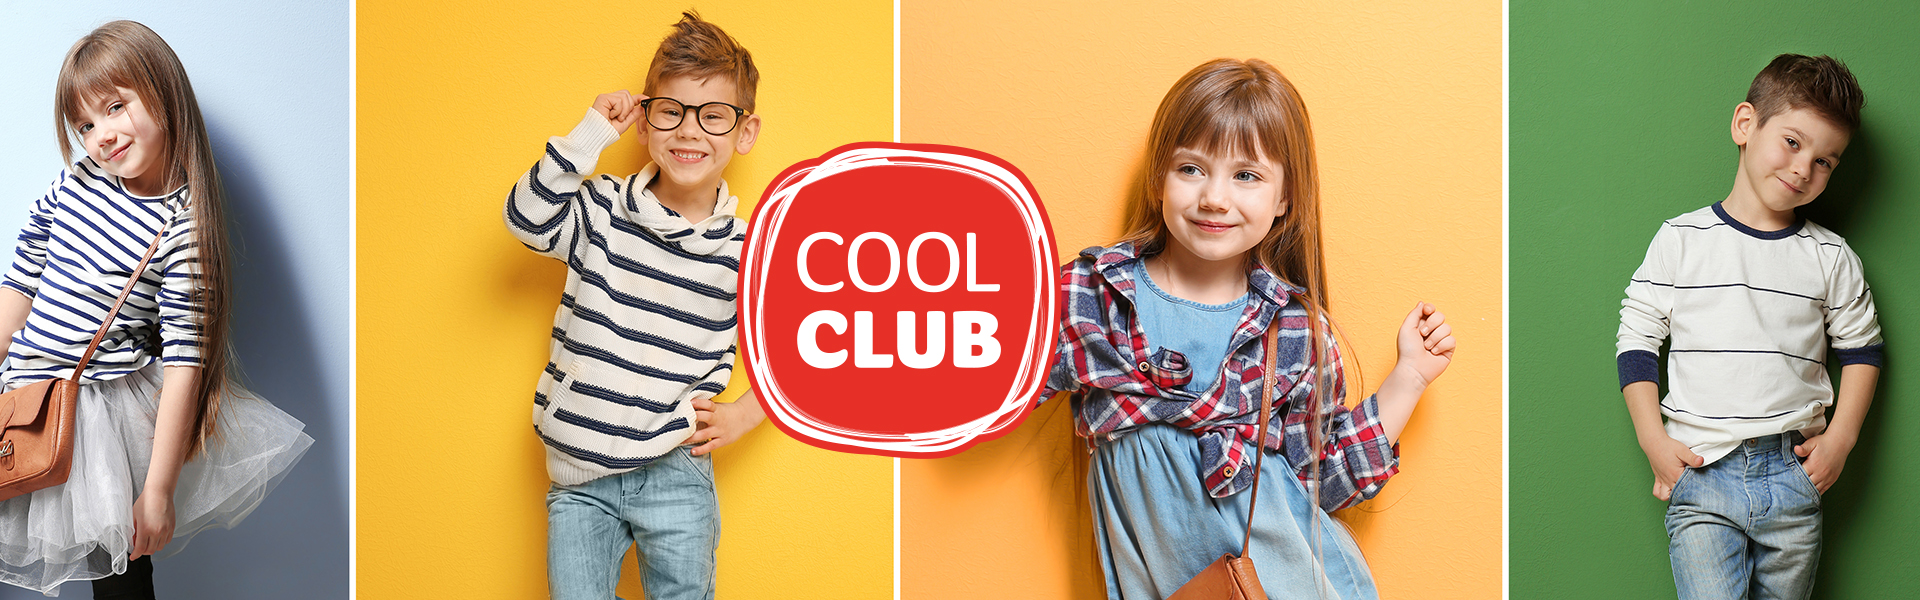 Cool Club šorti meitenēm, CCG2019290                             Cool Club